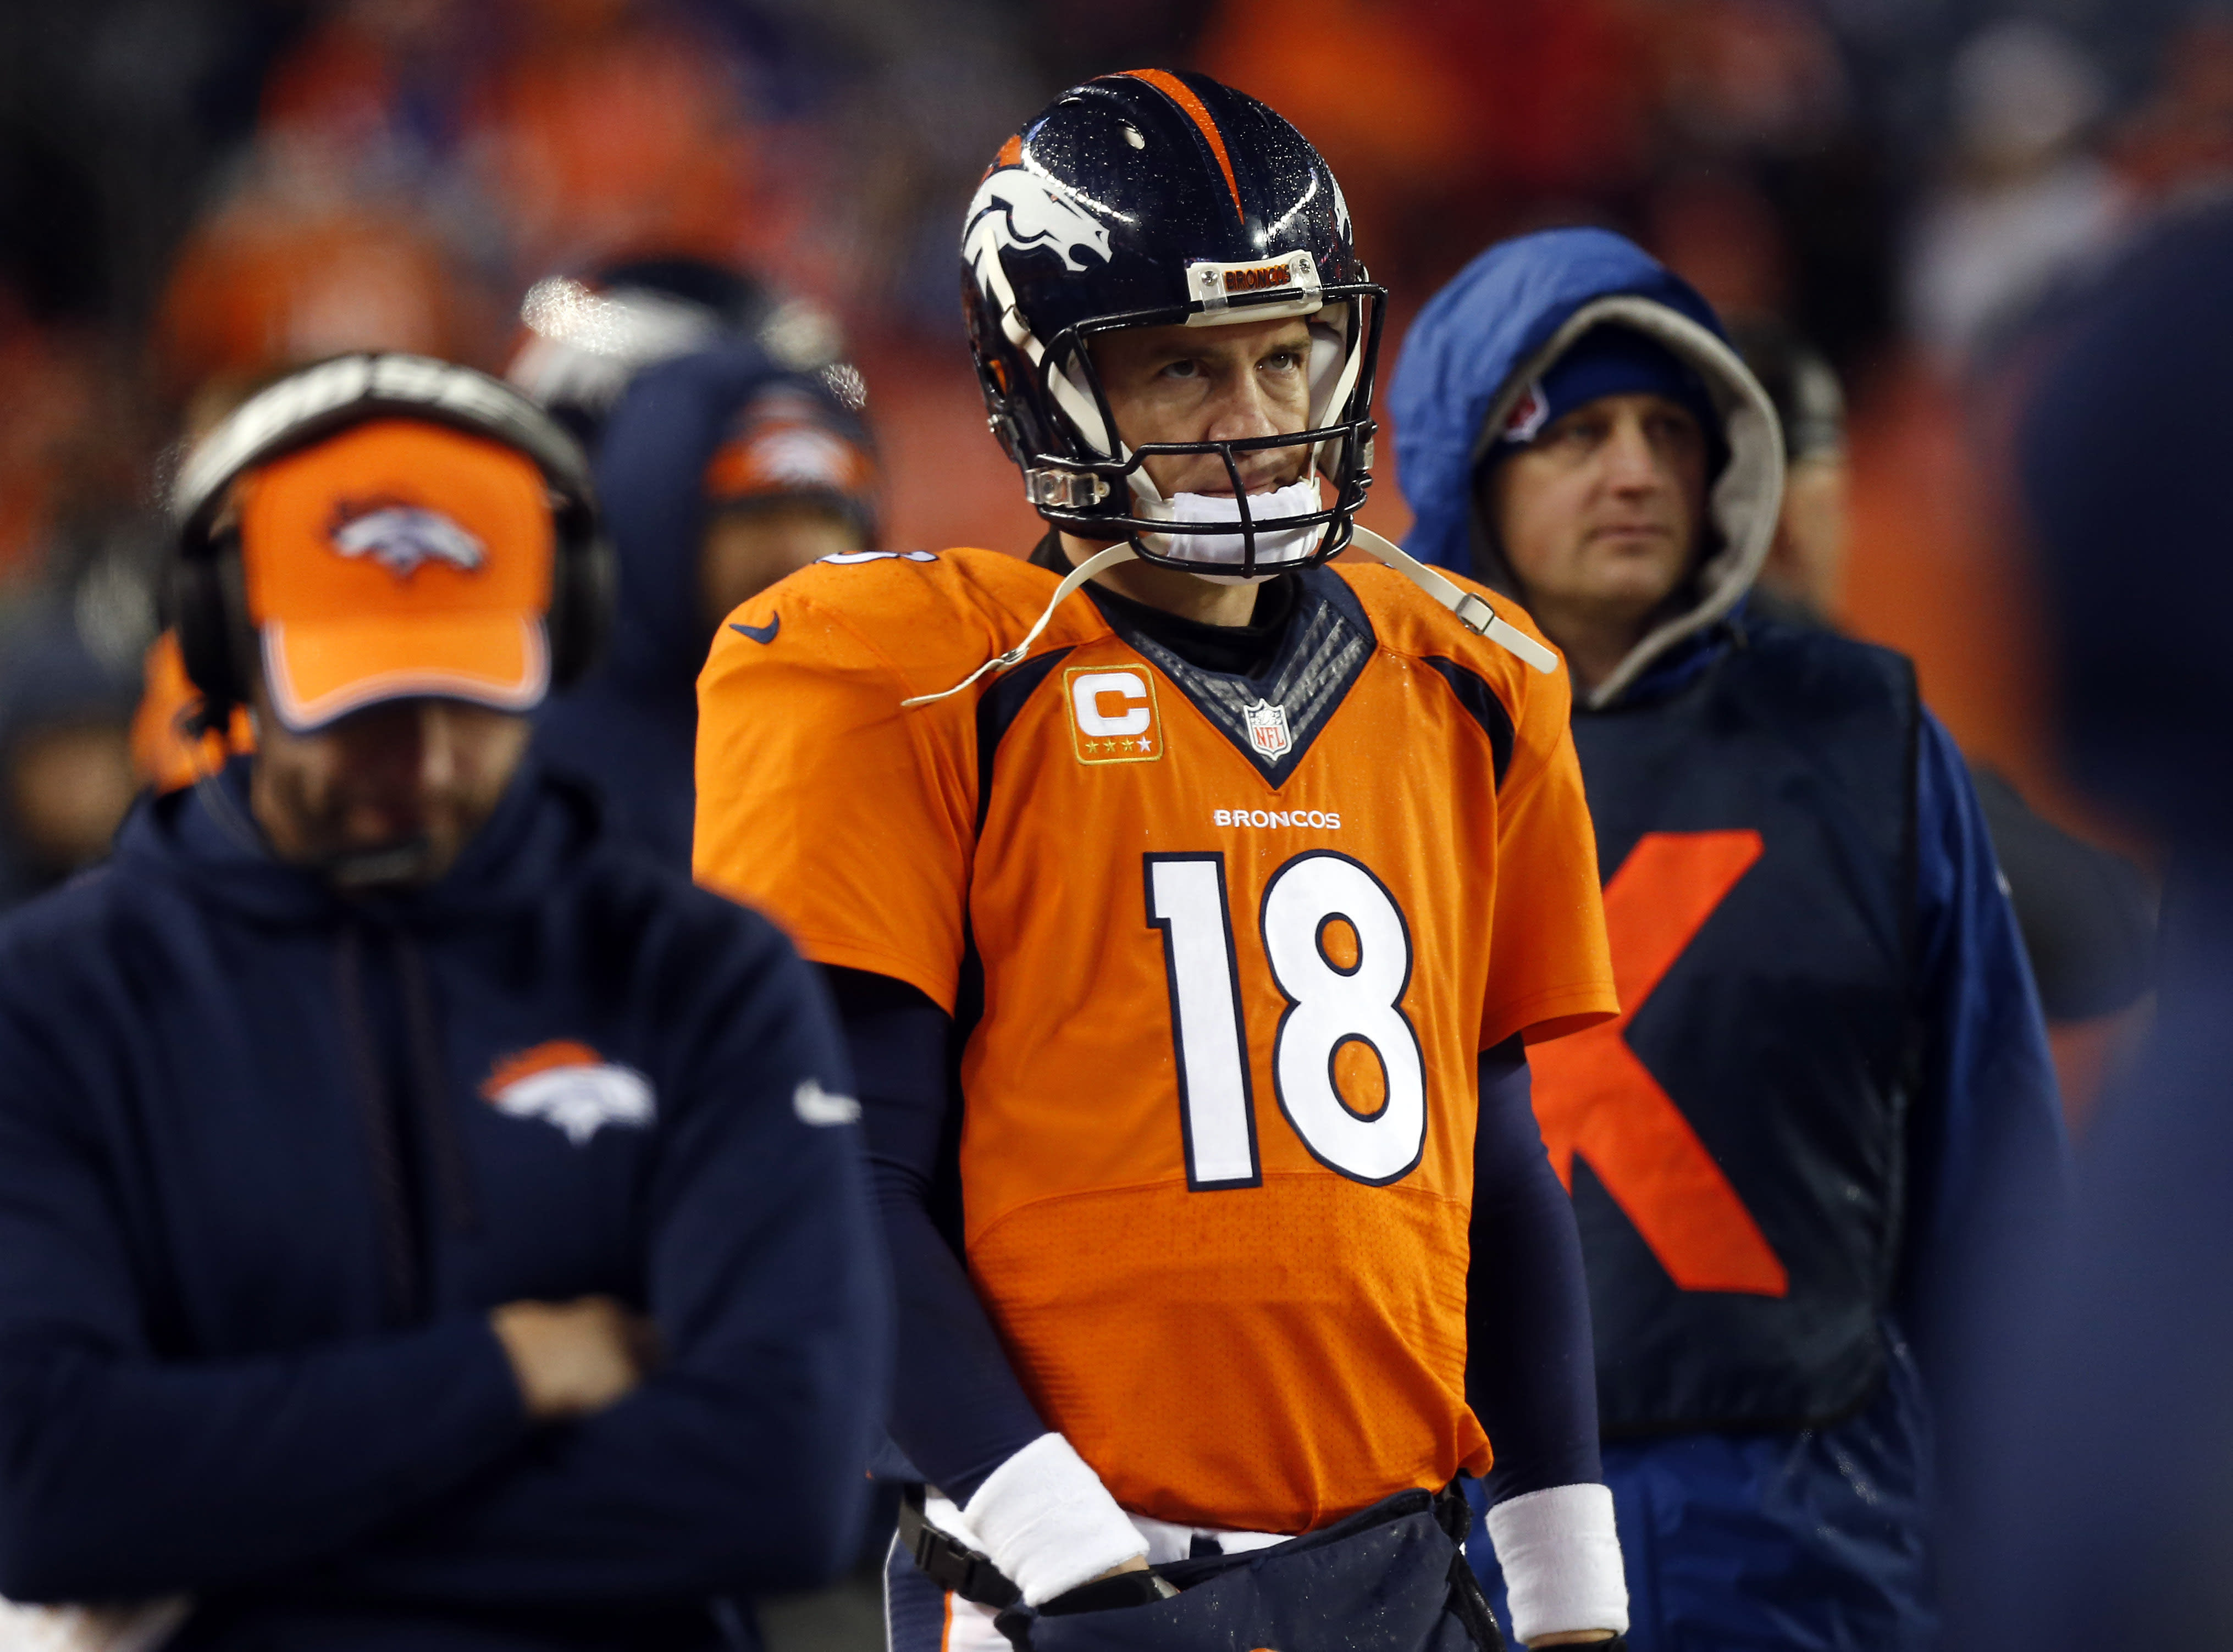 Injury News On Peyton Manning Explains Some Of His Struggles